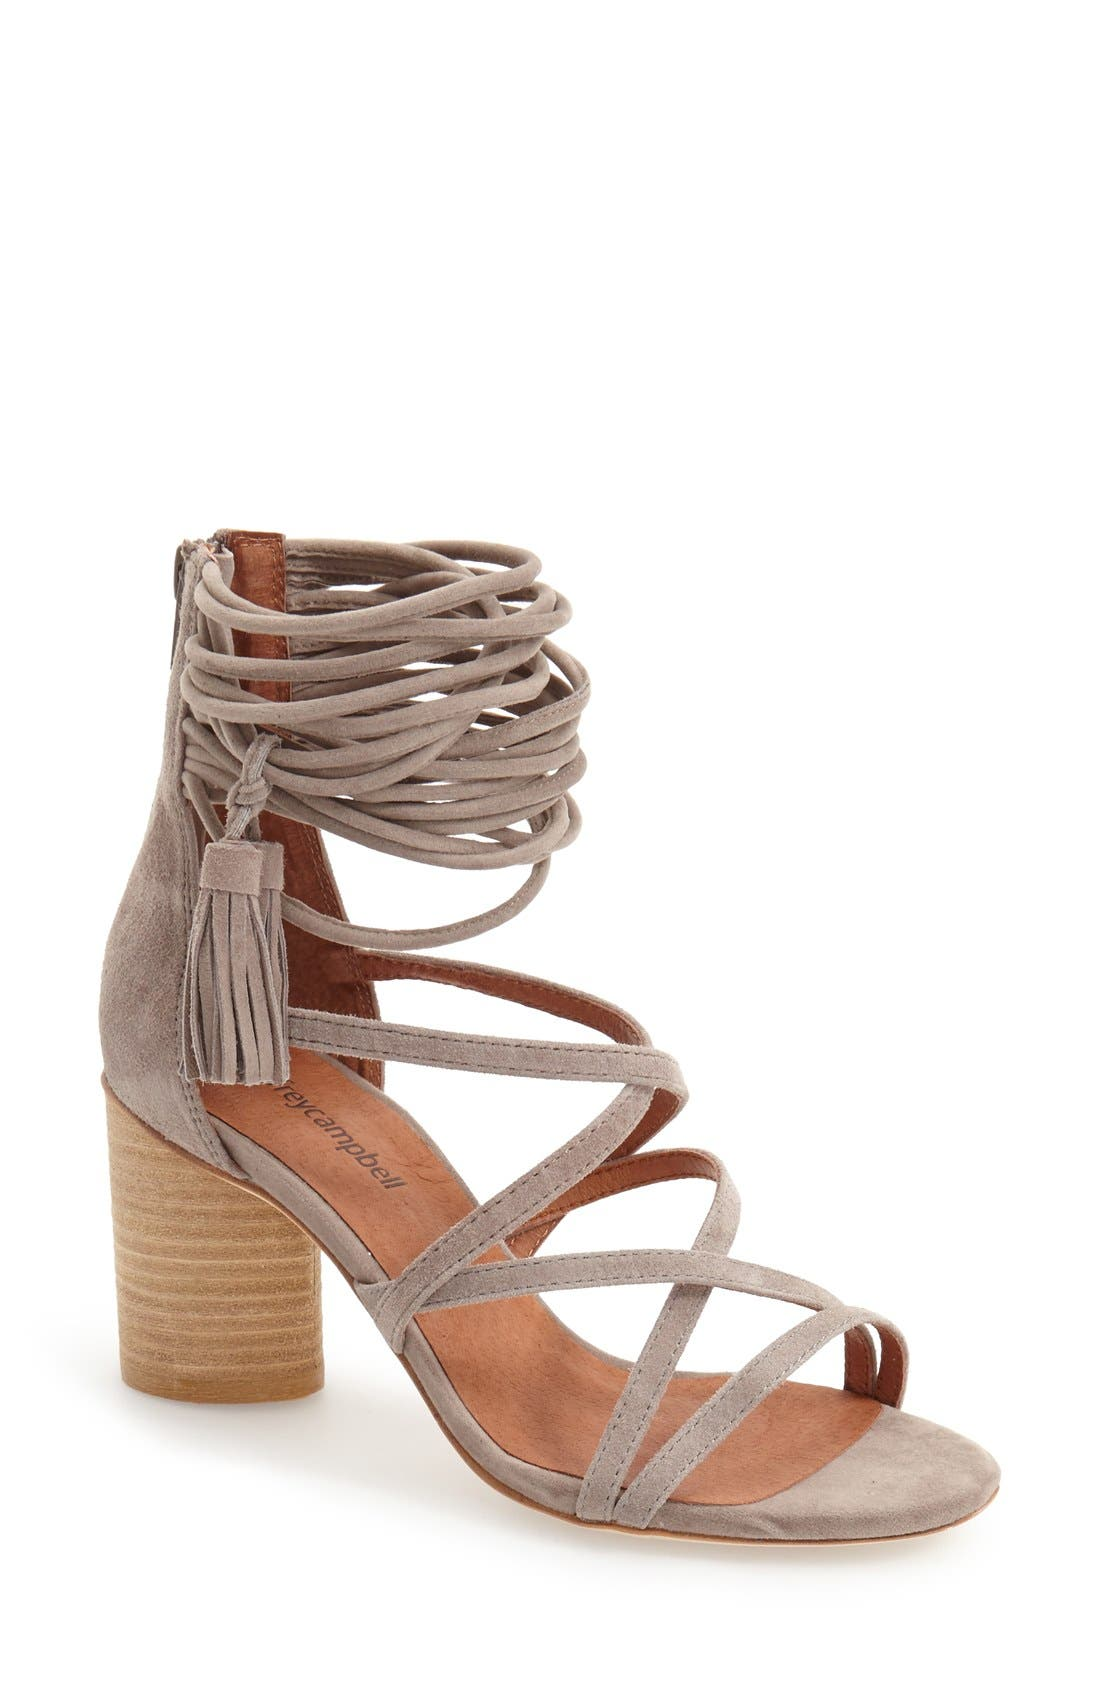 'Despina' Strappy Sandal,                             Main thumbnail 1, color,                             TAUPE SUEDE